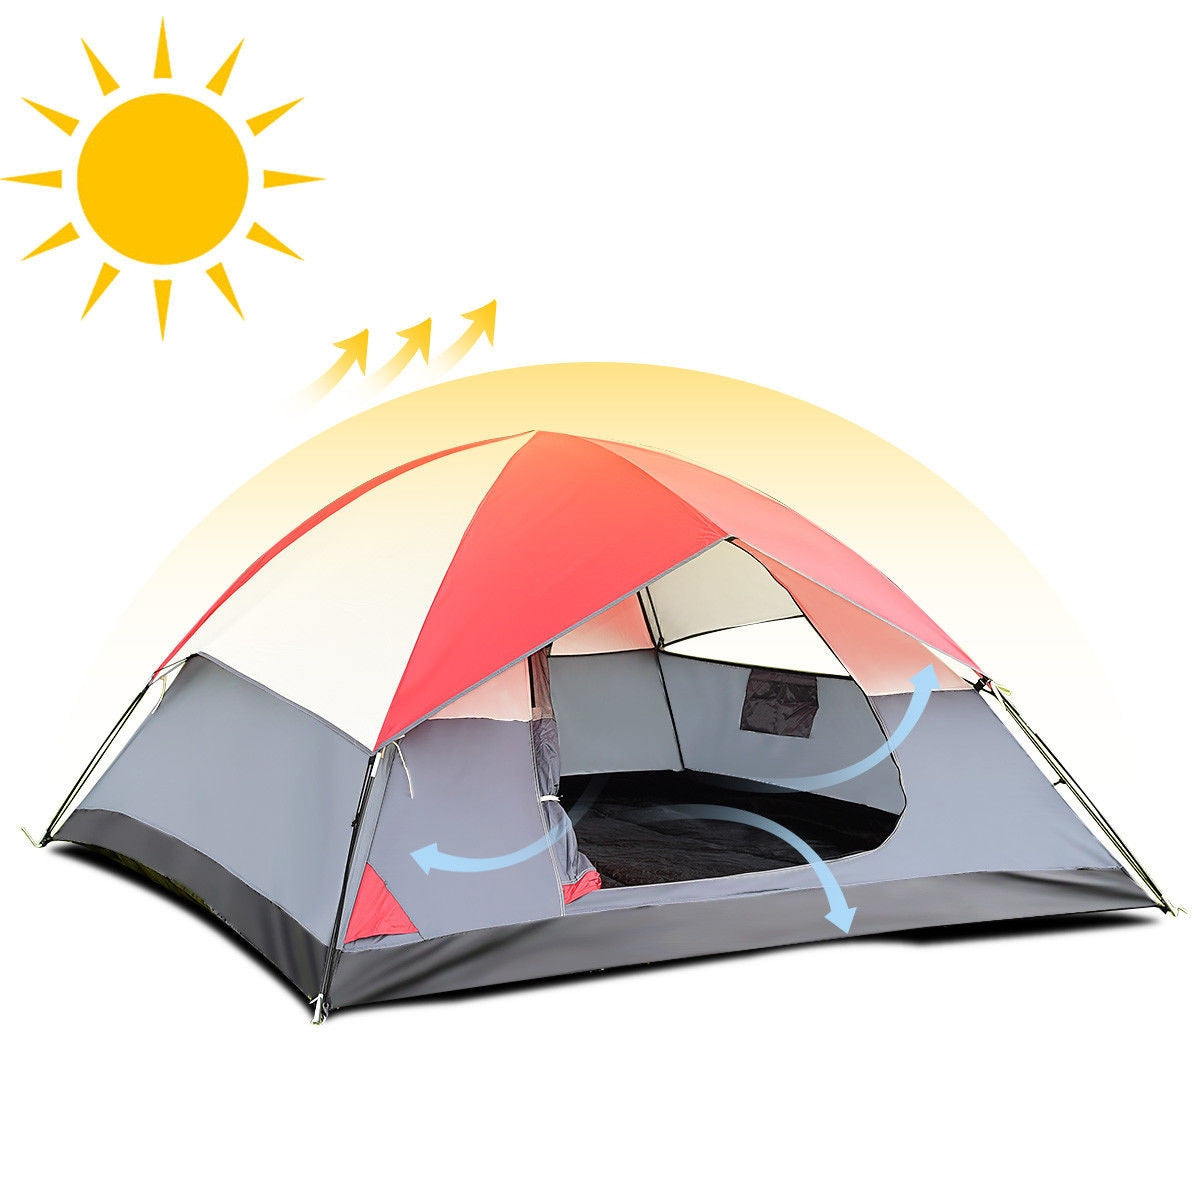 4 person camping tent airflow